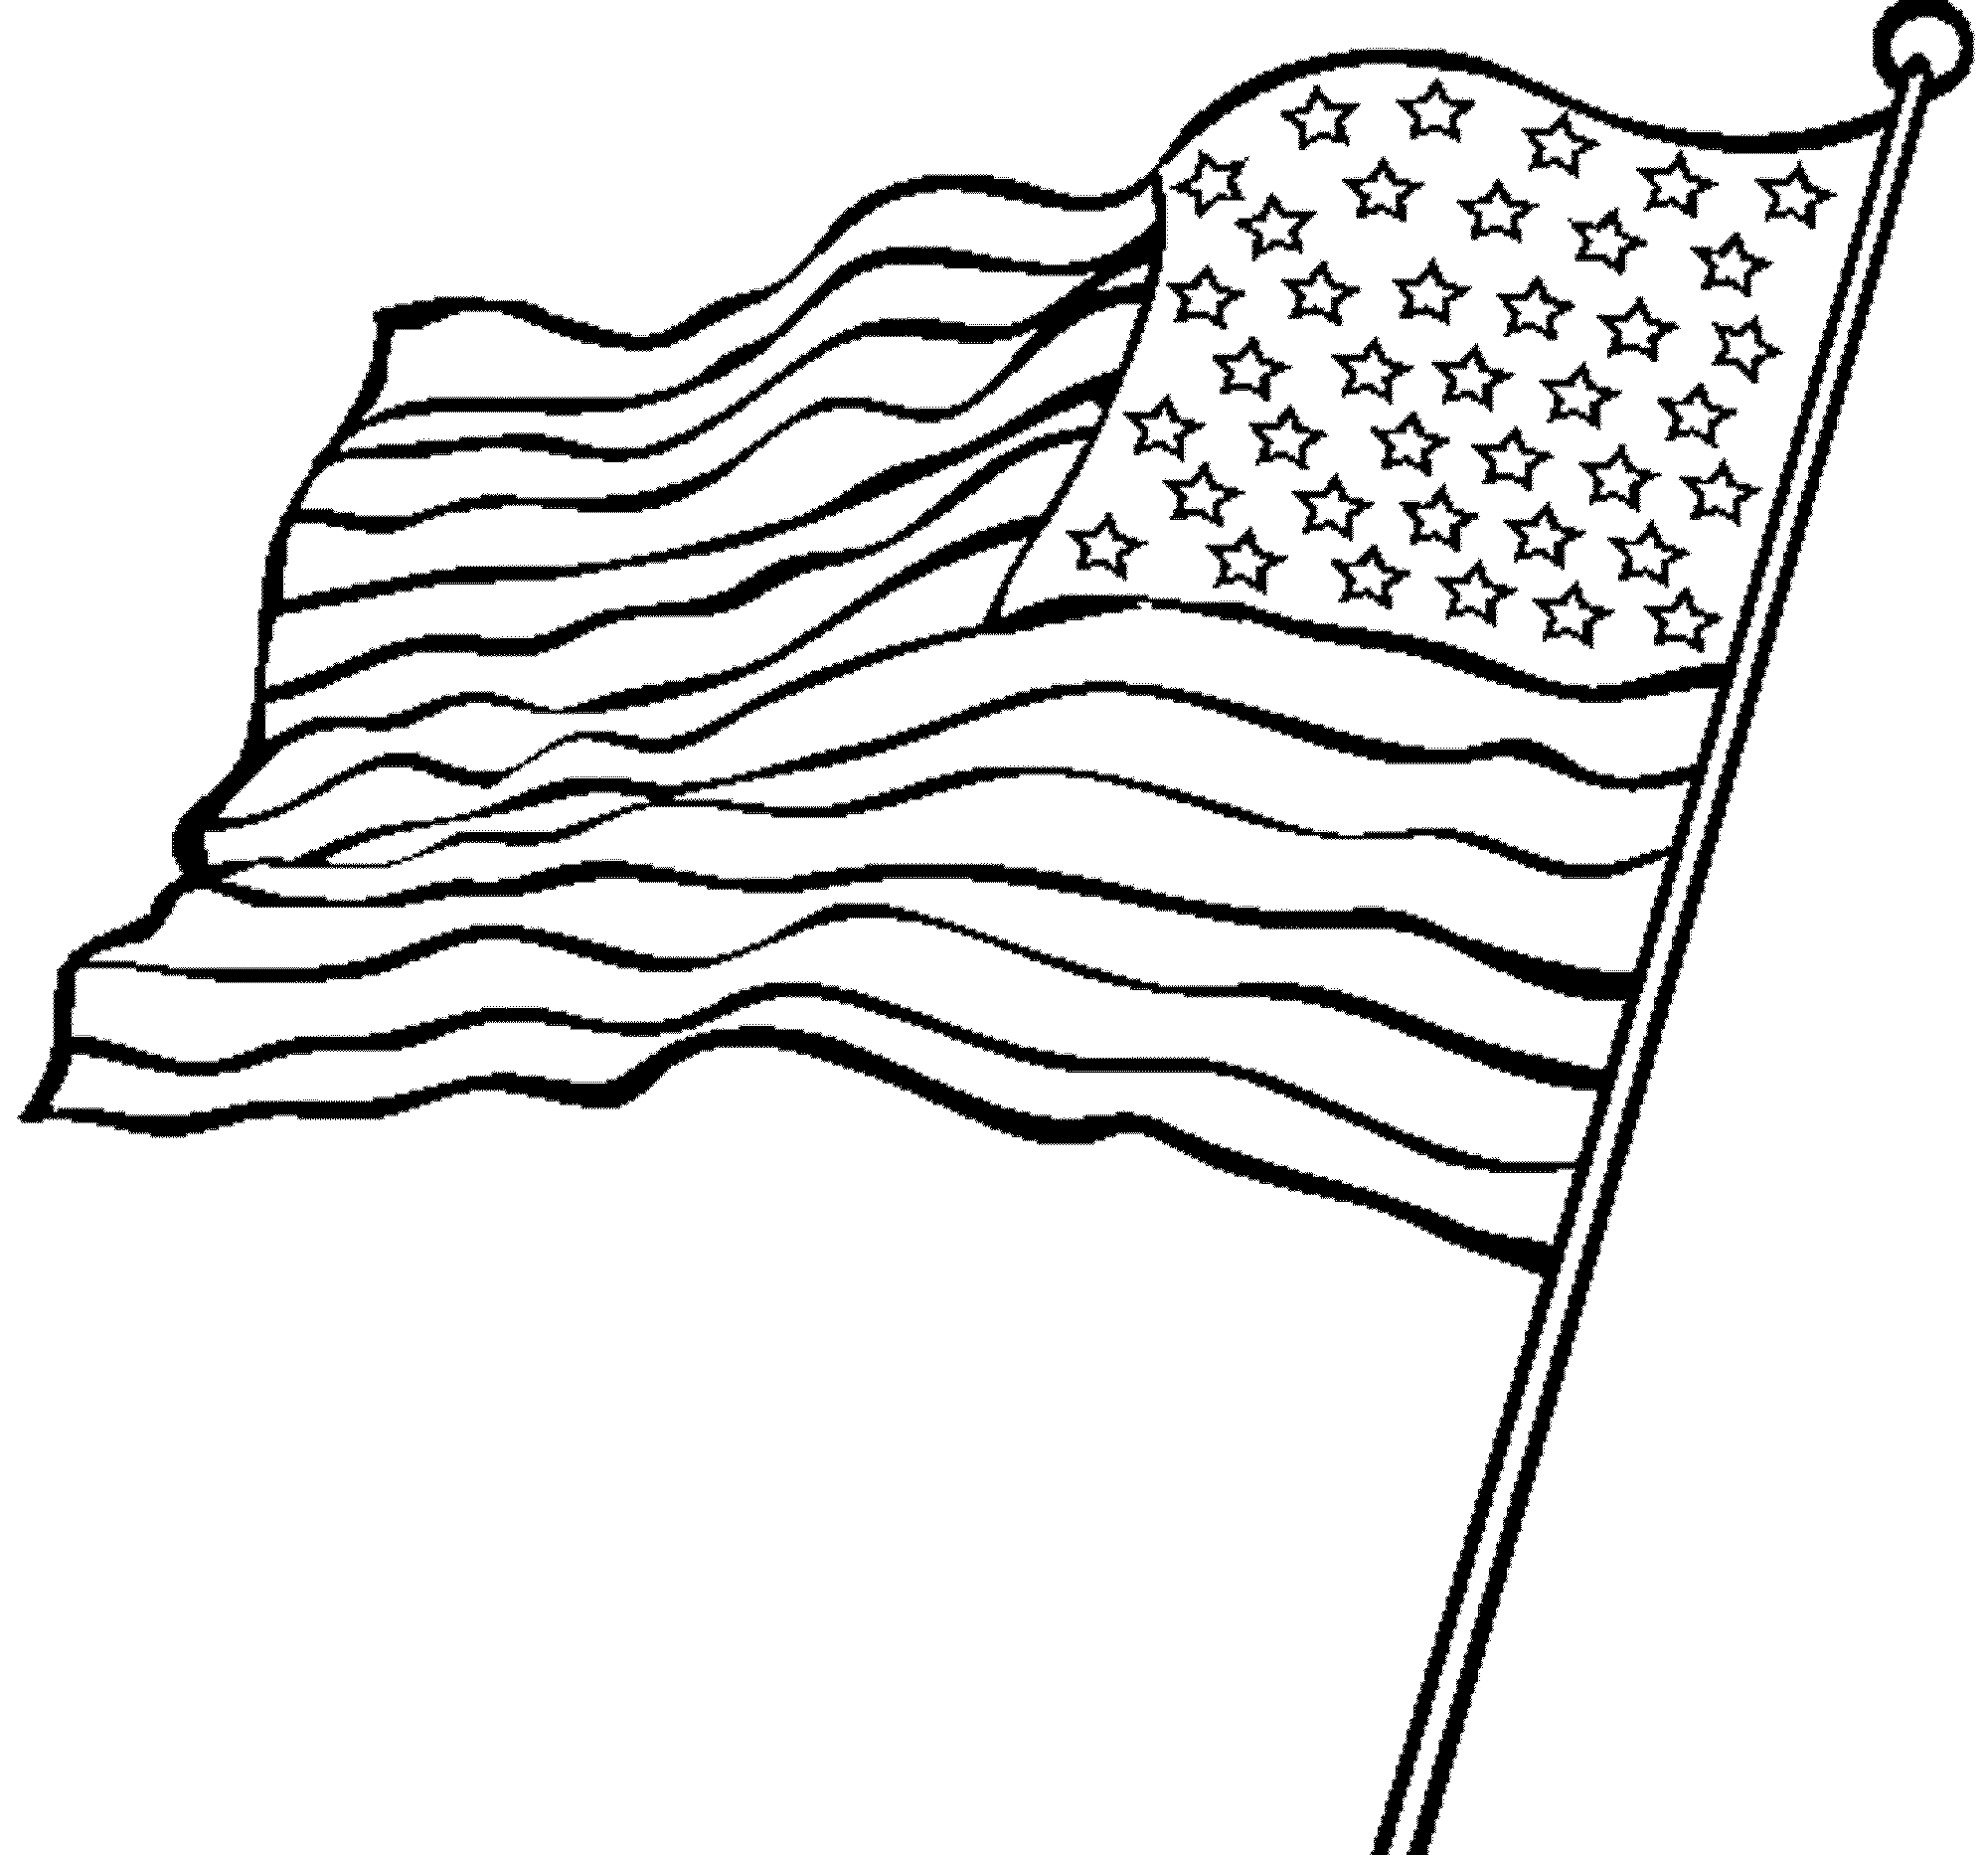 2000x1866 Great Veterans Day Printable Coloring Pages Cool Ideas For You